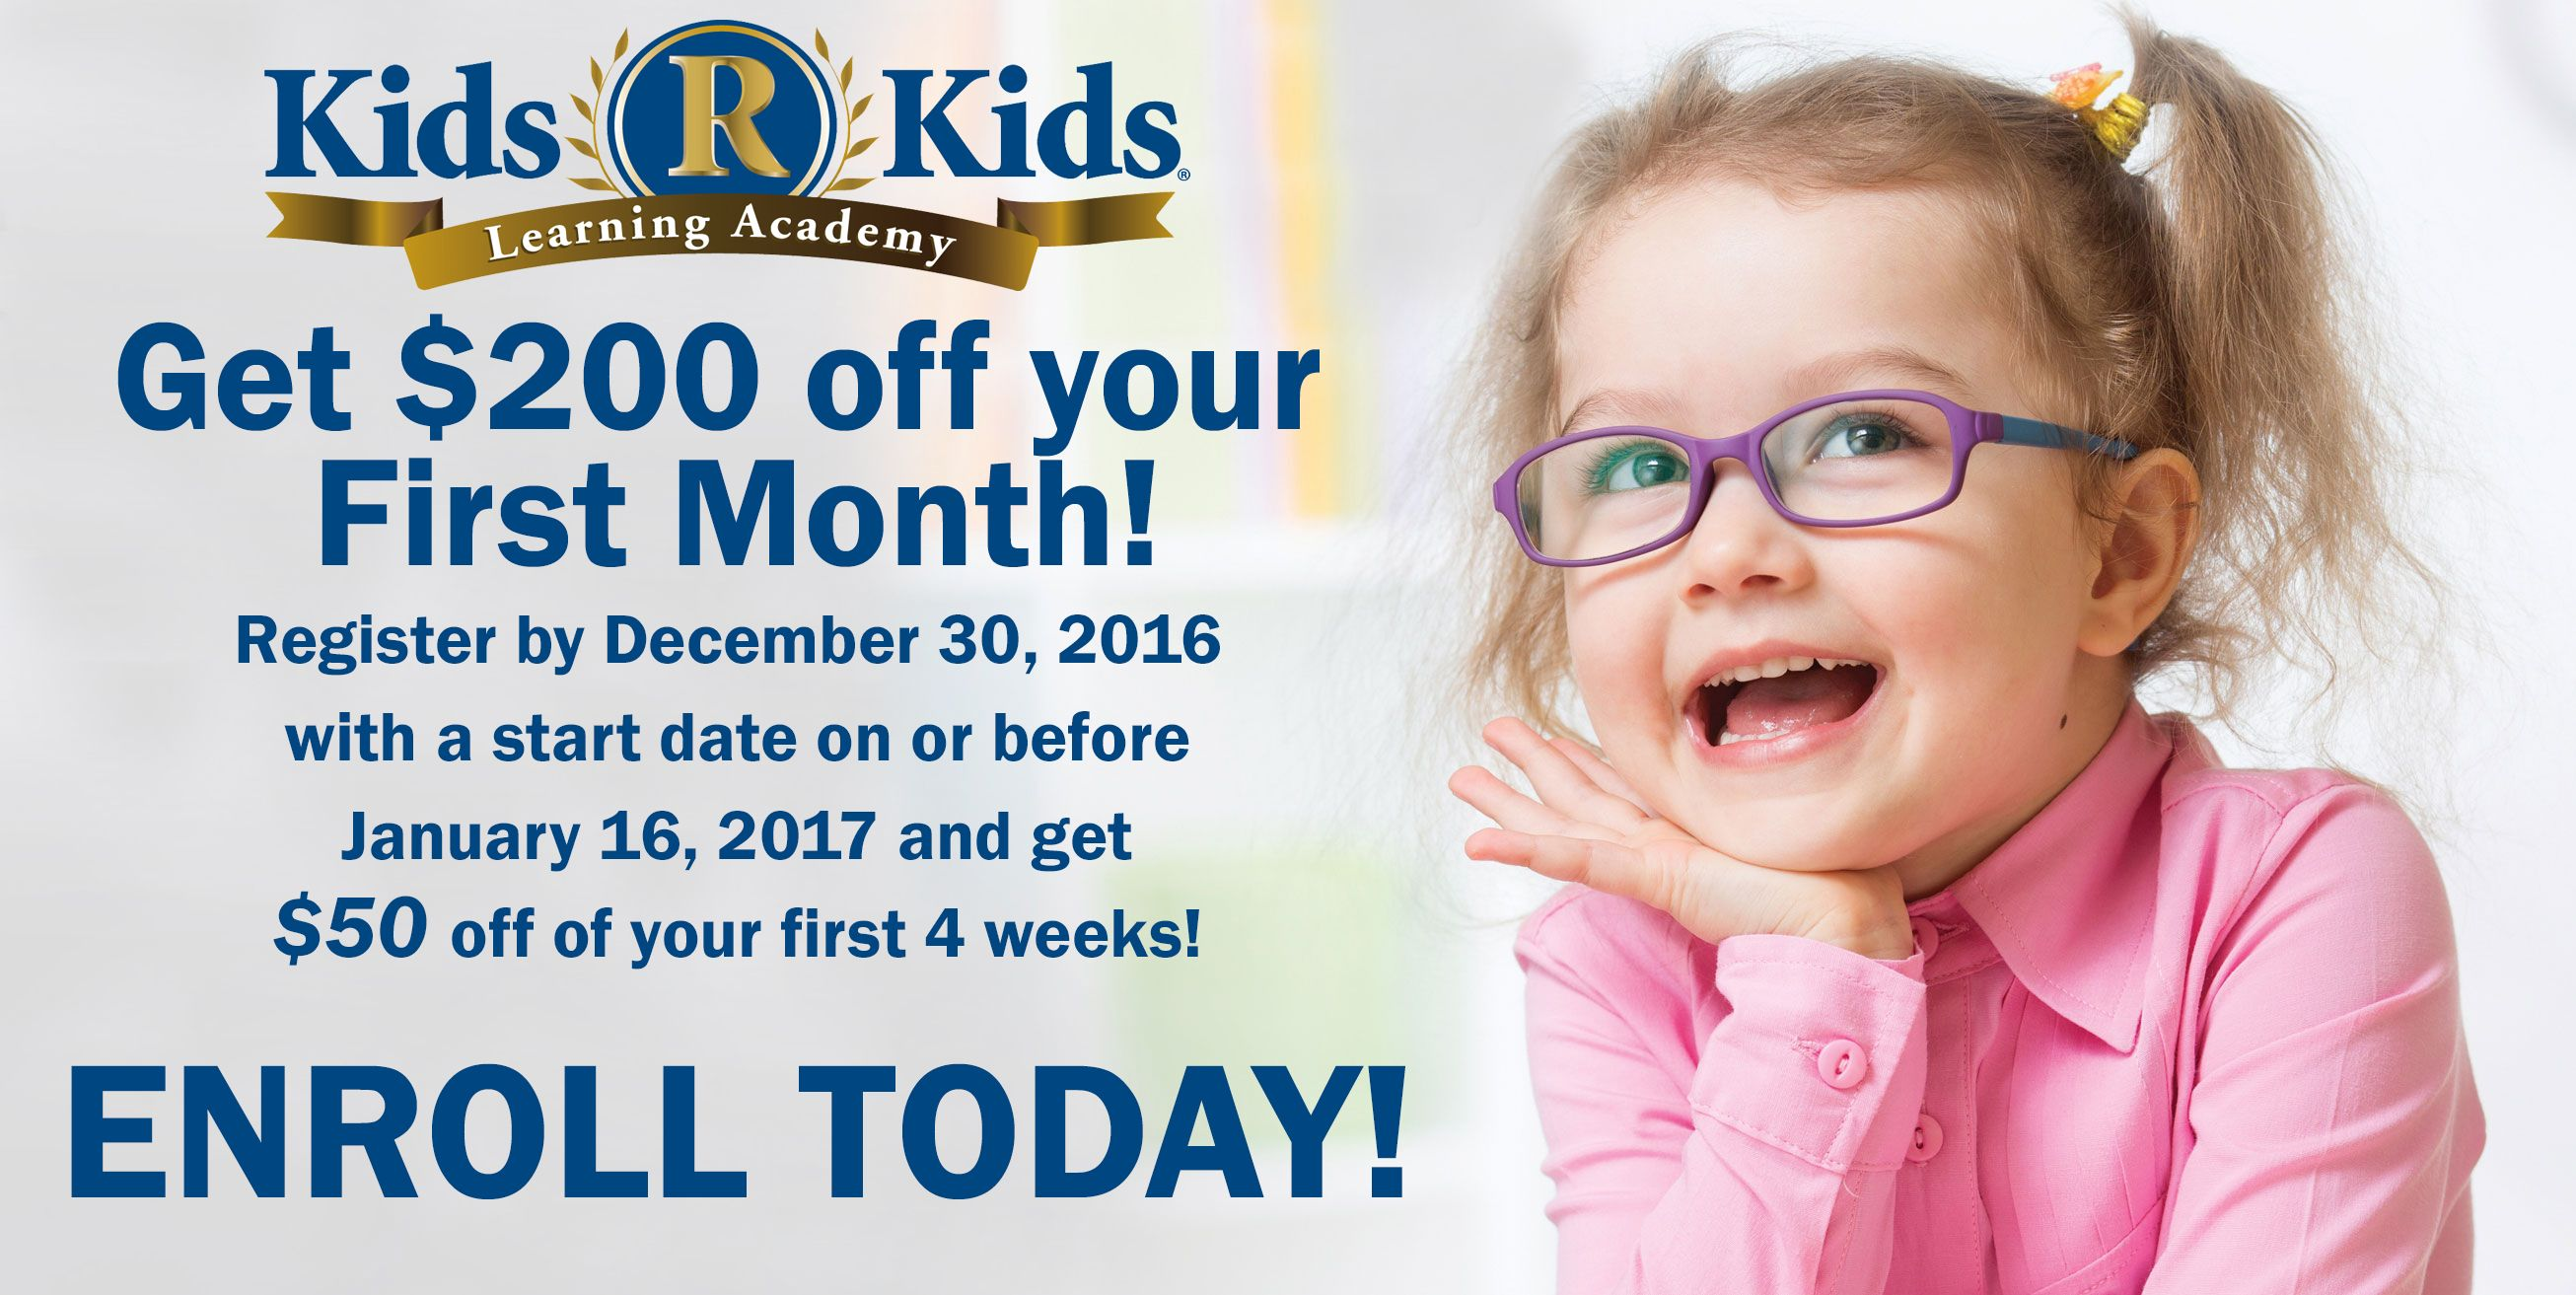 Save $200 off of your first month!